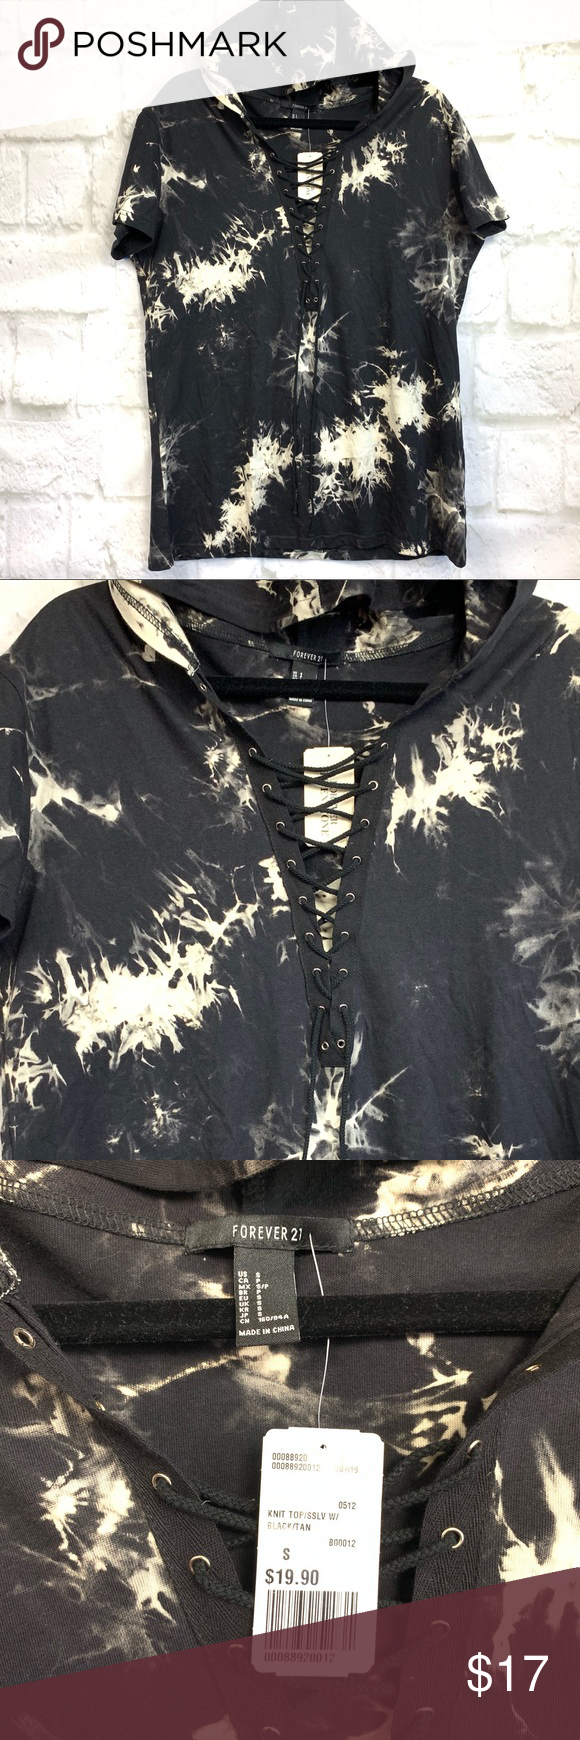 New Tie Dye Hoodie Tee Shirt T Shirt With Hood Black With Off White Tie Dye Lace Up Front With Silver Hardware Perf Tie Dye Hoodie Hoodie Tee Tee Shirts [ 1740 x 580 Pixel ]